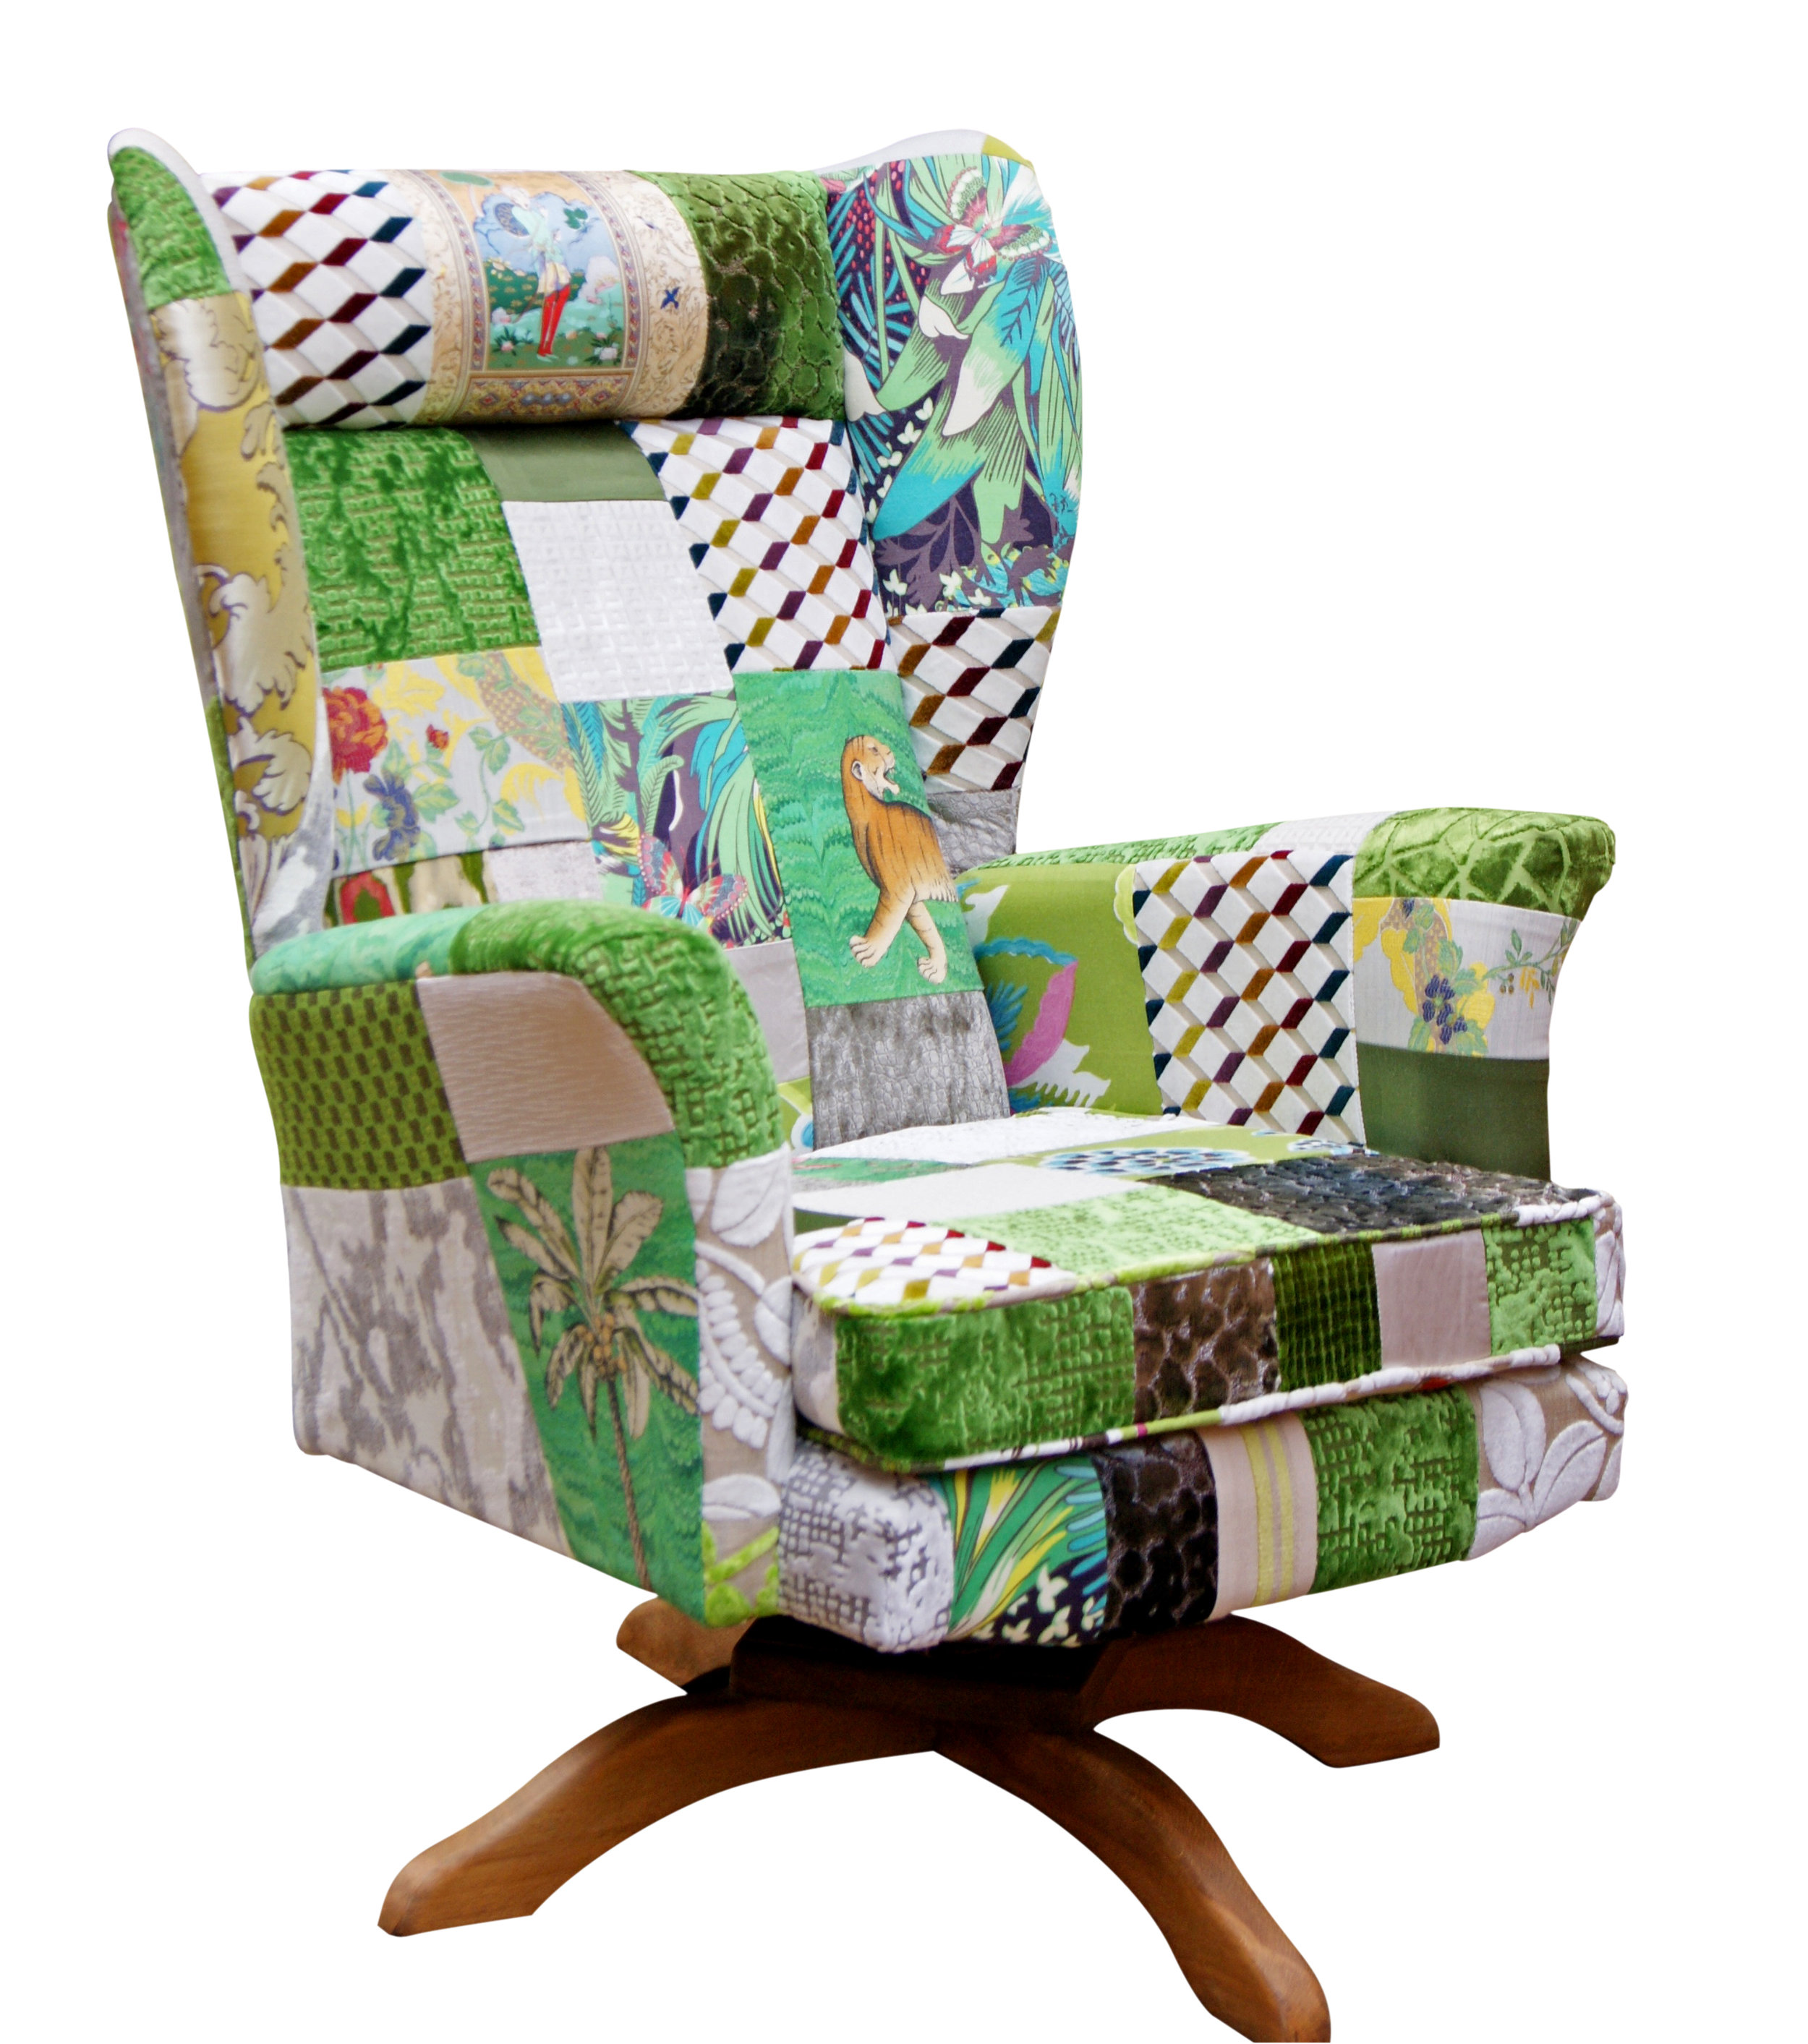 Envy patchwork chair by Kelly Swallow 3.jpg